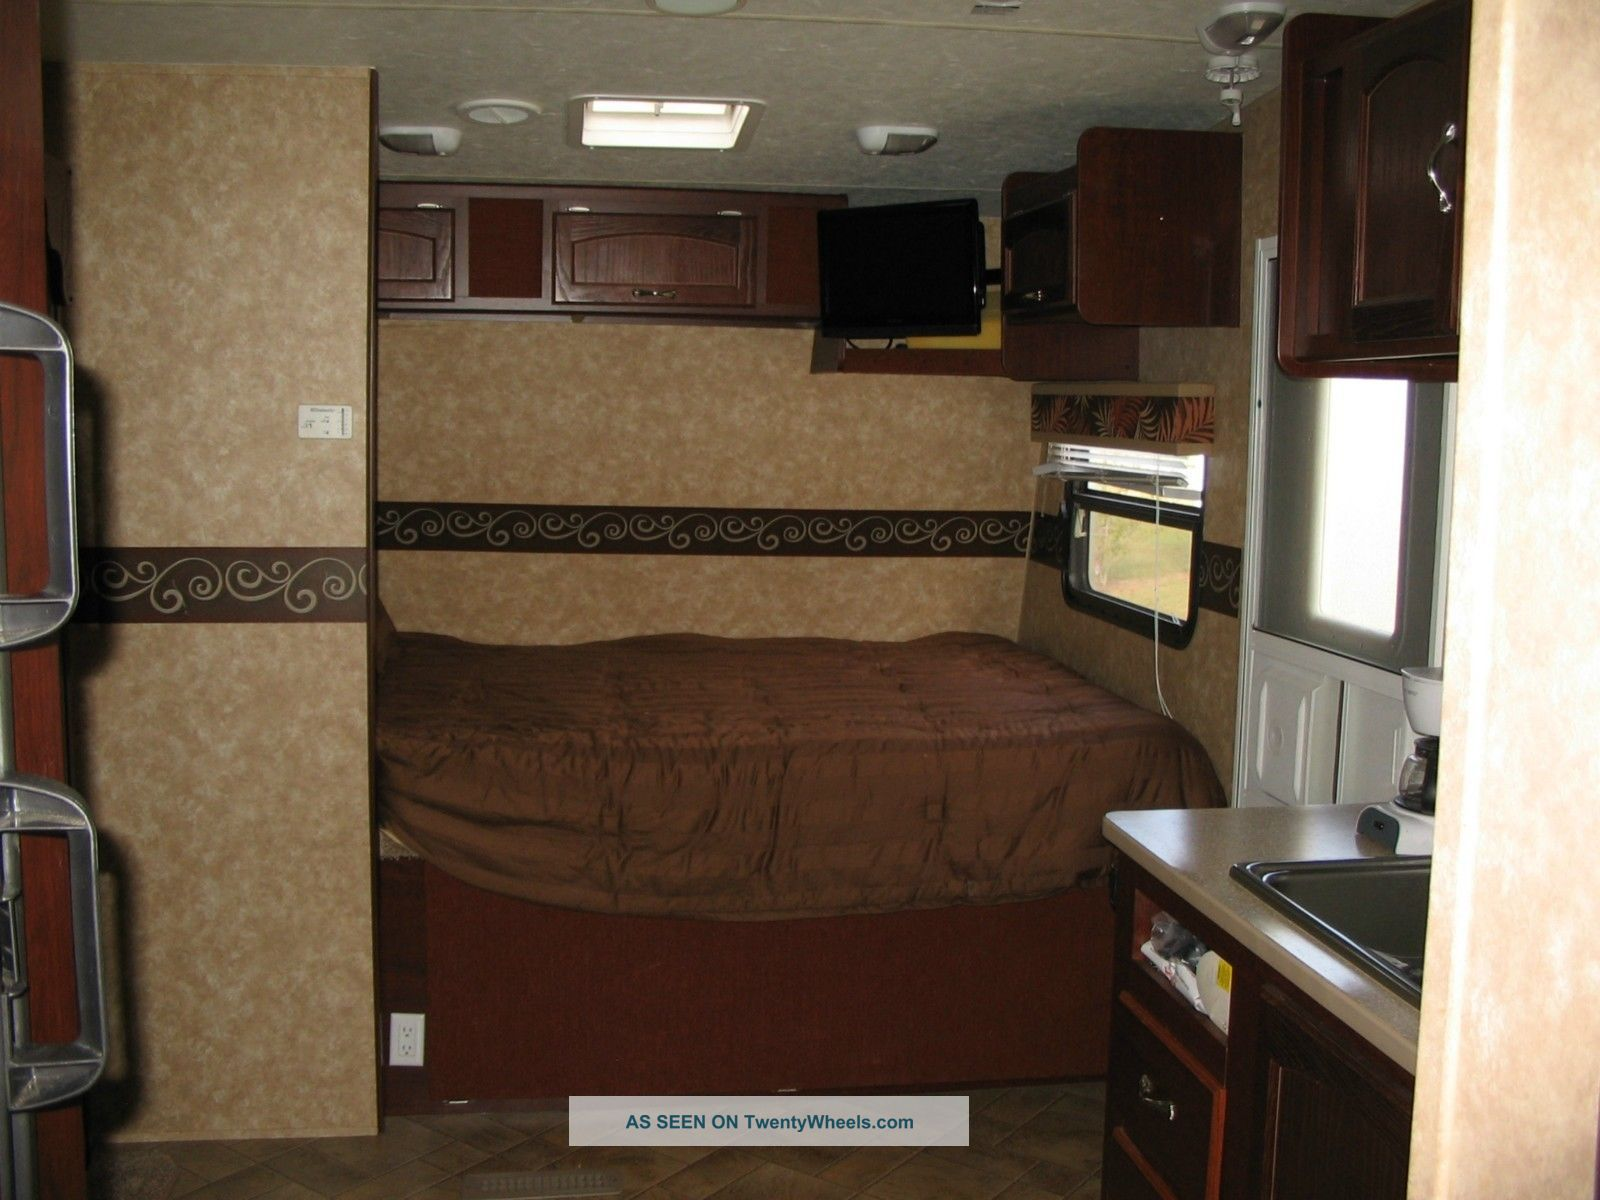 26 ' Rpm Adventure Toy Hauler With Slide Out (camper) Trailers photo 6